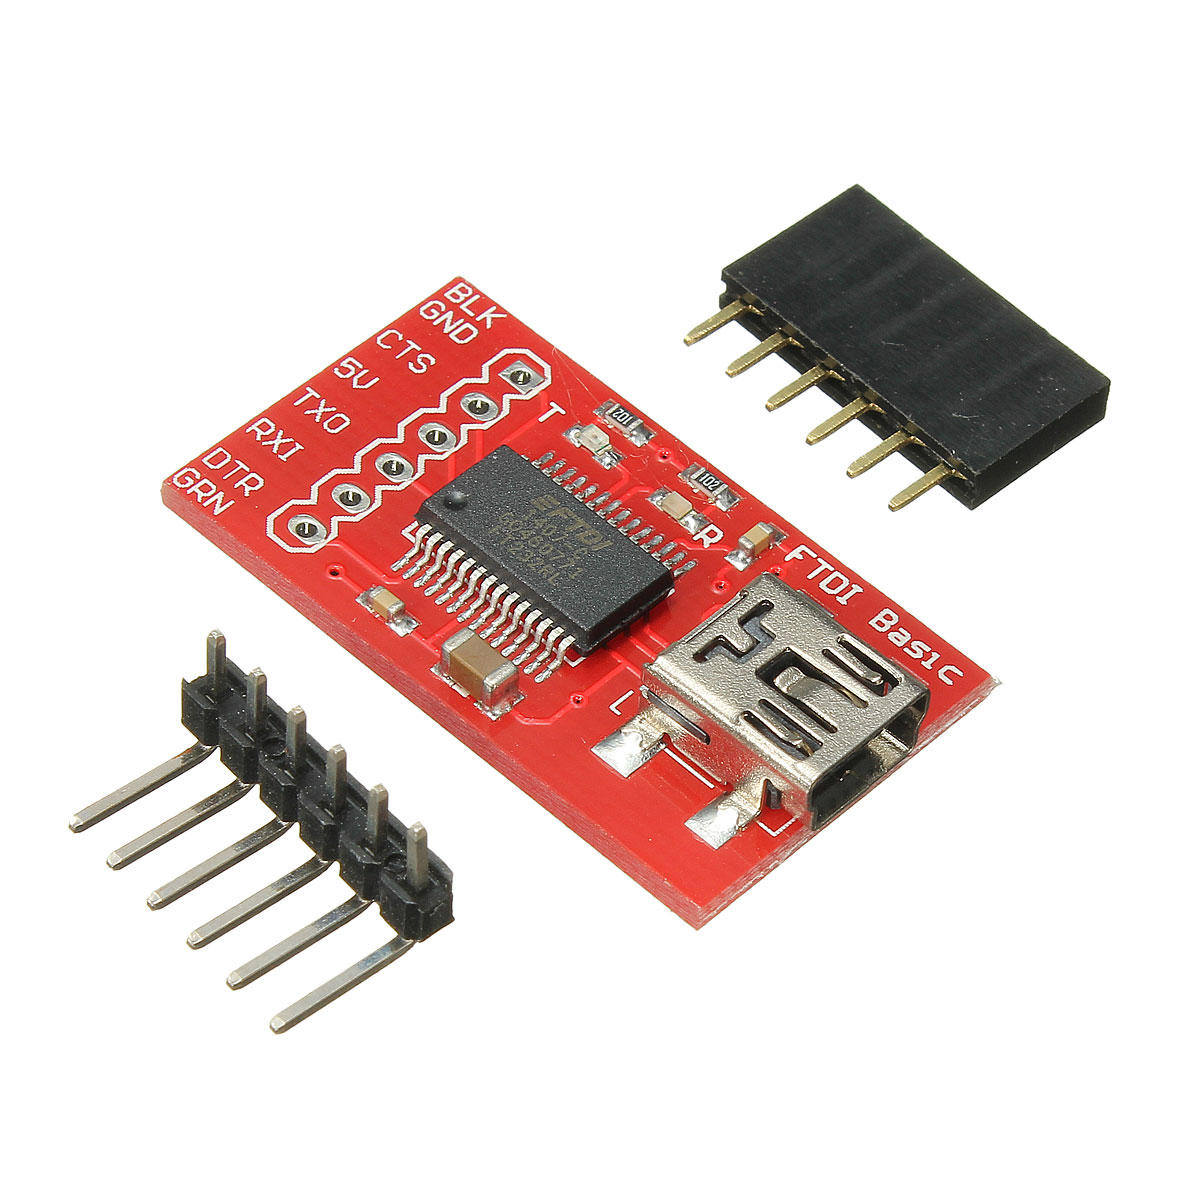 FTDI FT232RL USB 2.0 Seriell Adapter Module 3.3 V 5V TTL Geekcreit for Arduino - products that work with official Arduino boards